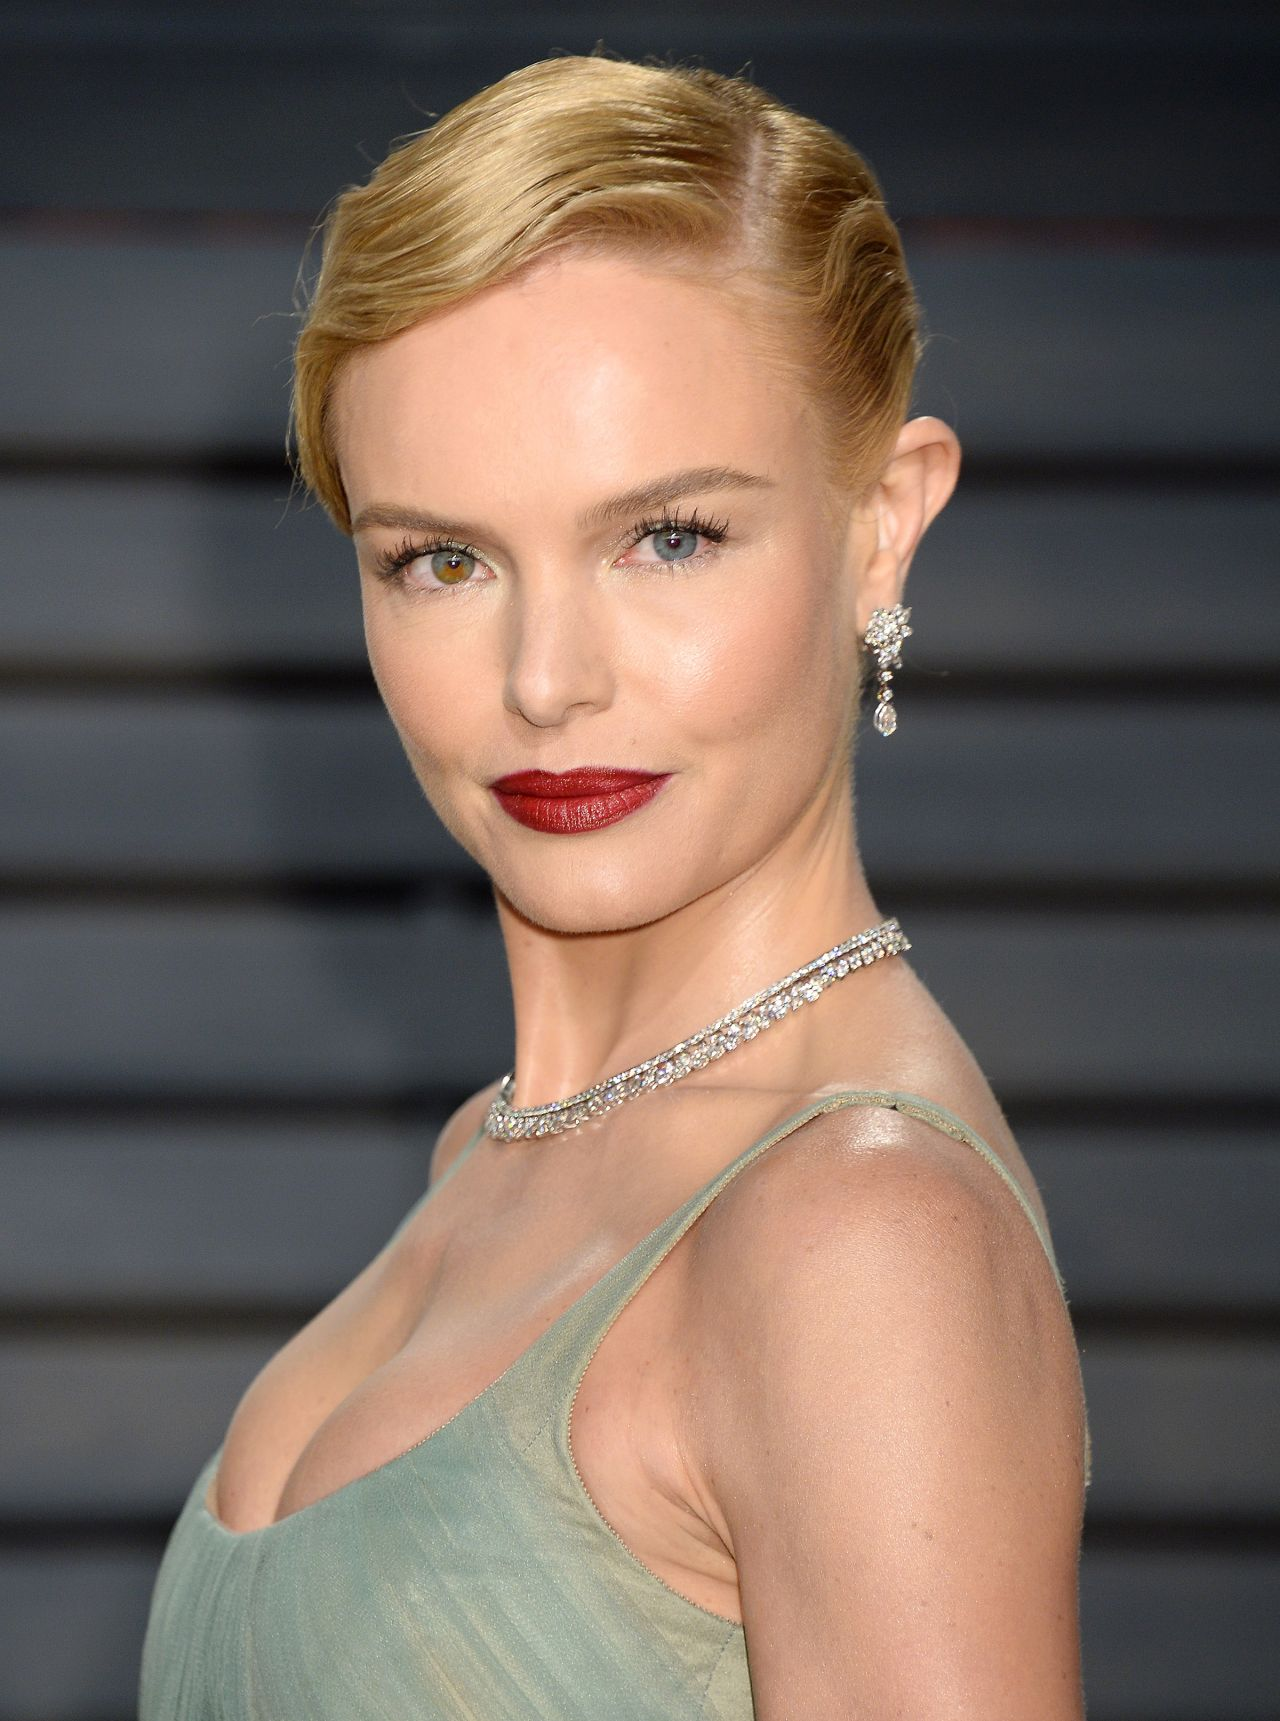 Kate Bosworth at Vanity Fair Oscar 2017 Party in Los Angeles